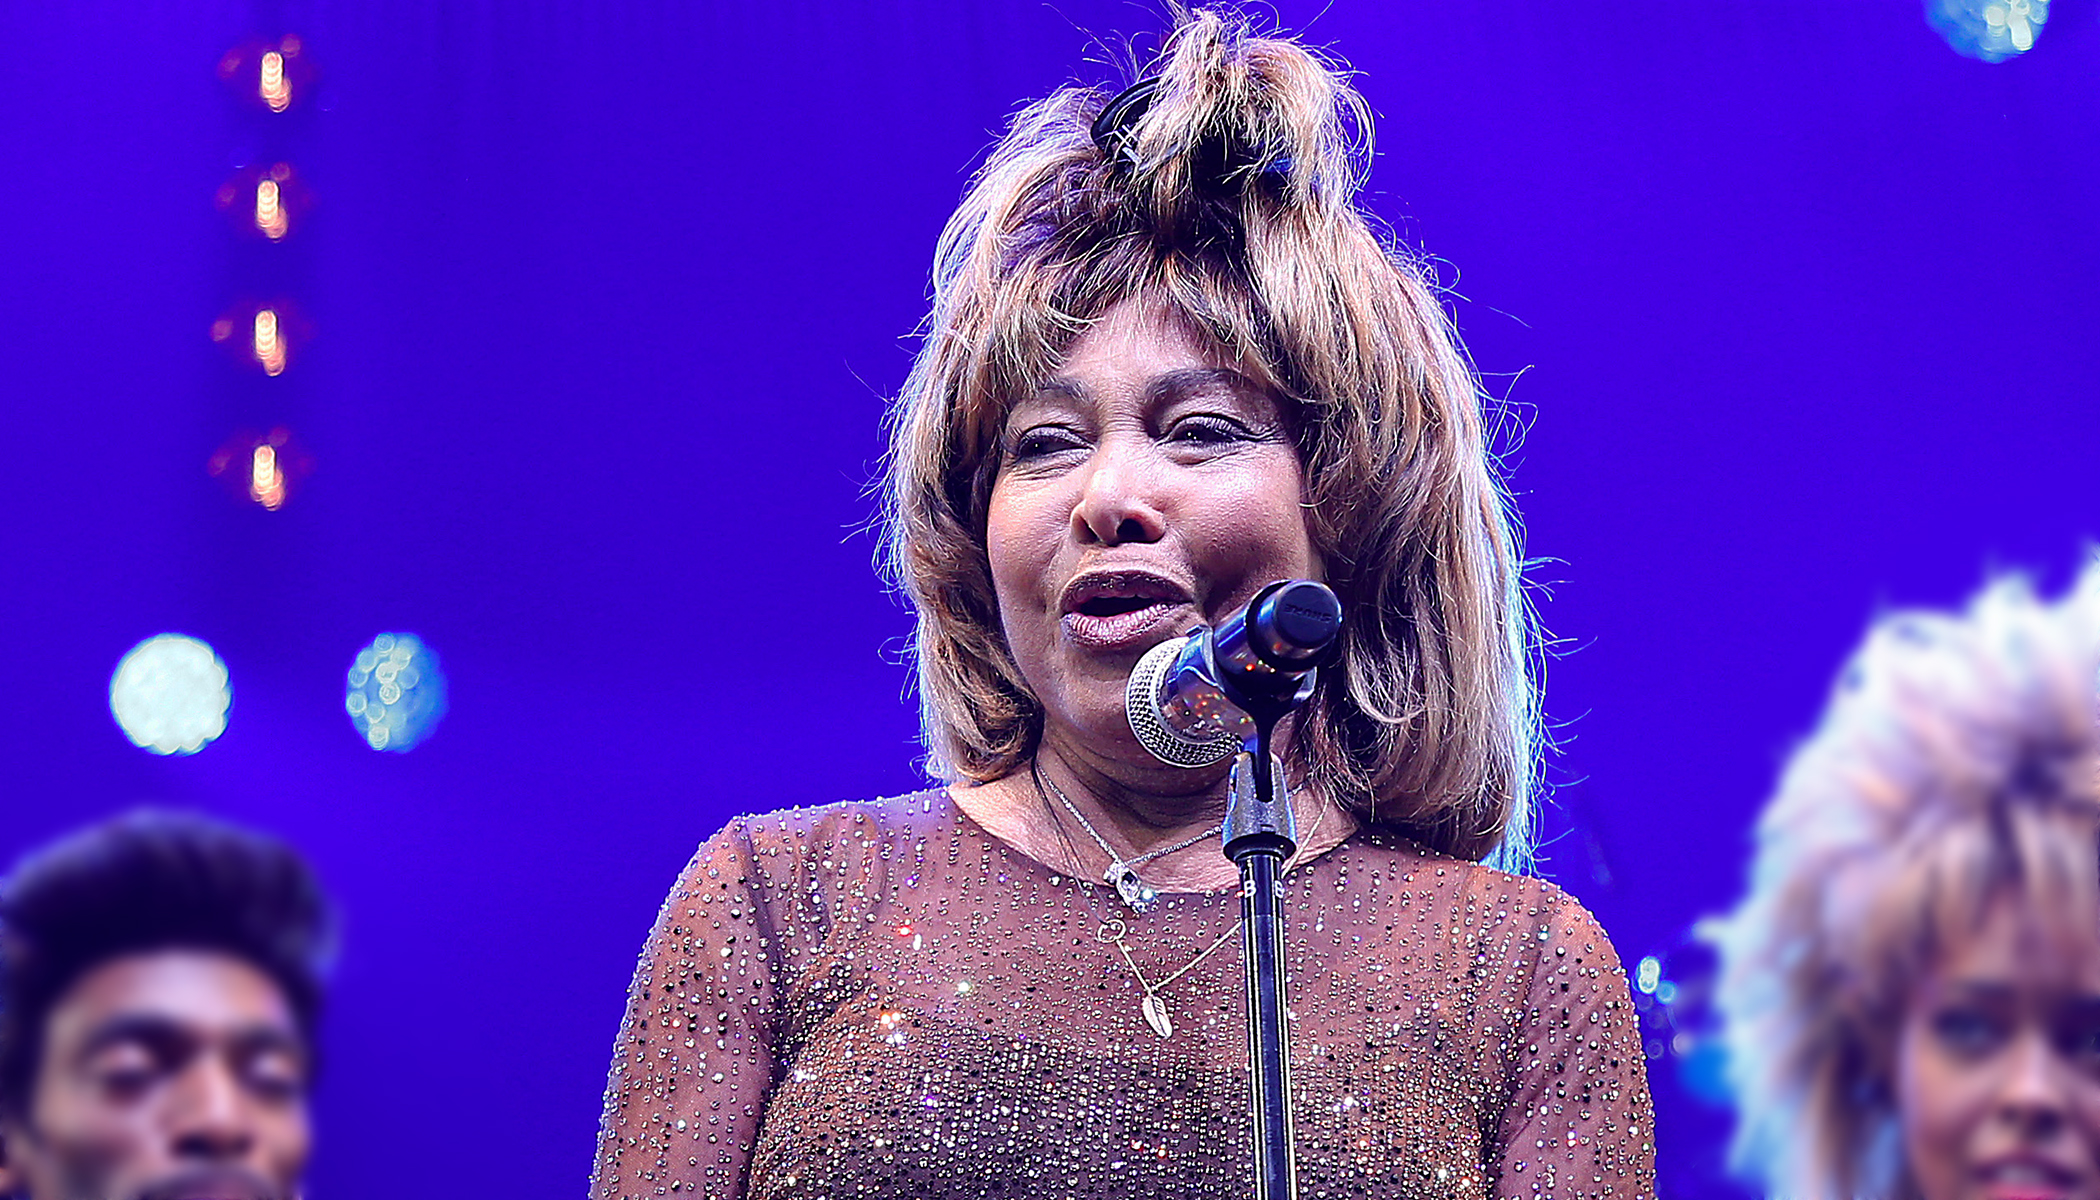 Tina Turner Turns 80, Posts Empowering Message on Social Media: 'How did I think I would be at 80?'